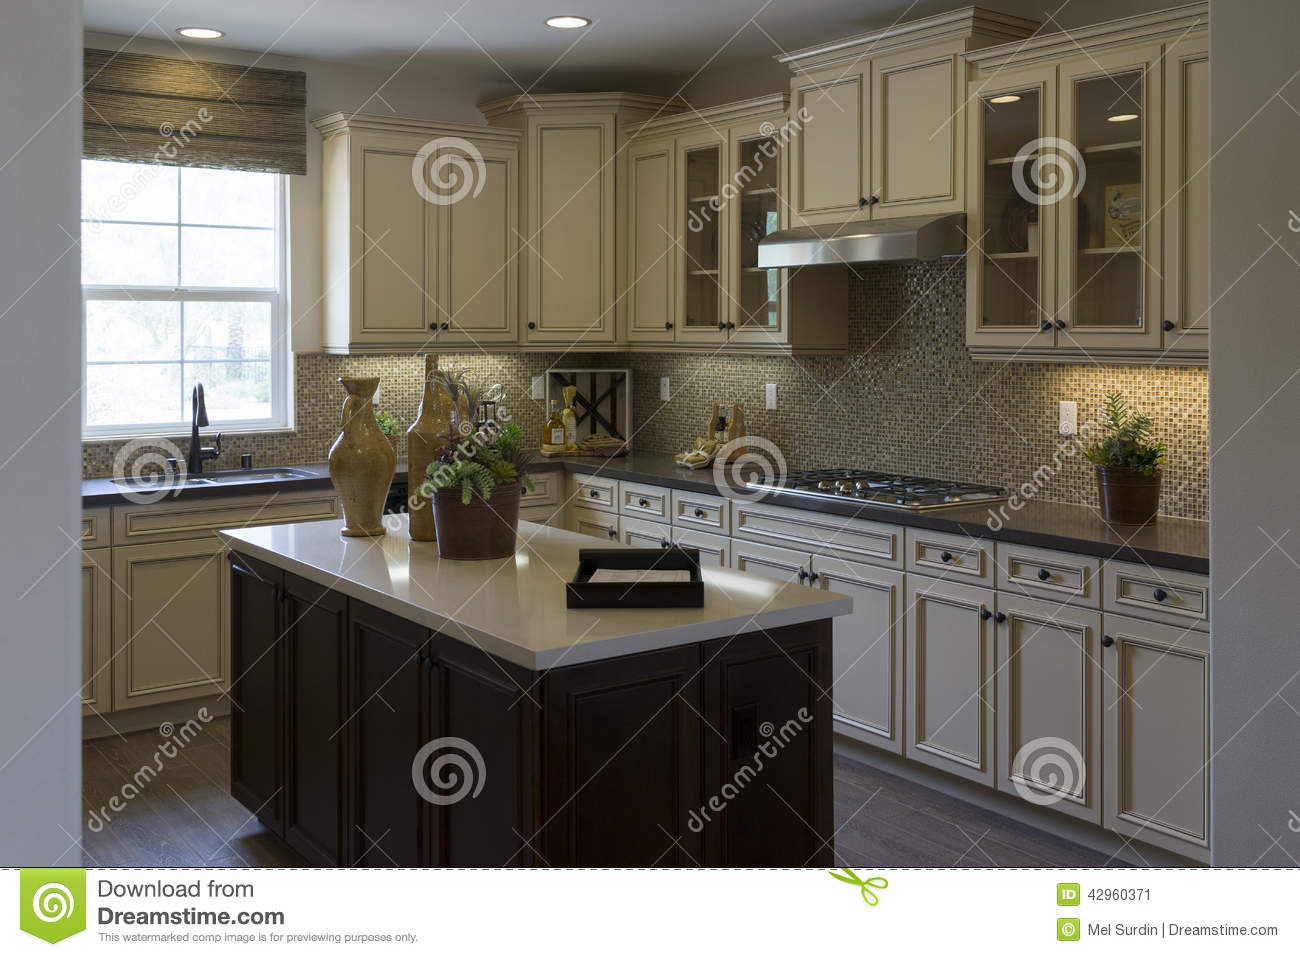 Model home kitchen california editorial photo image for House kitchen model